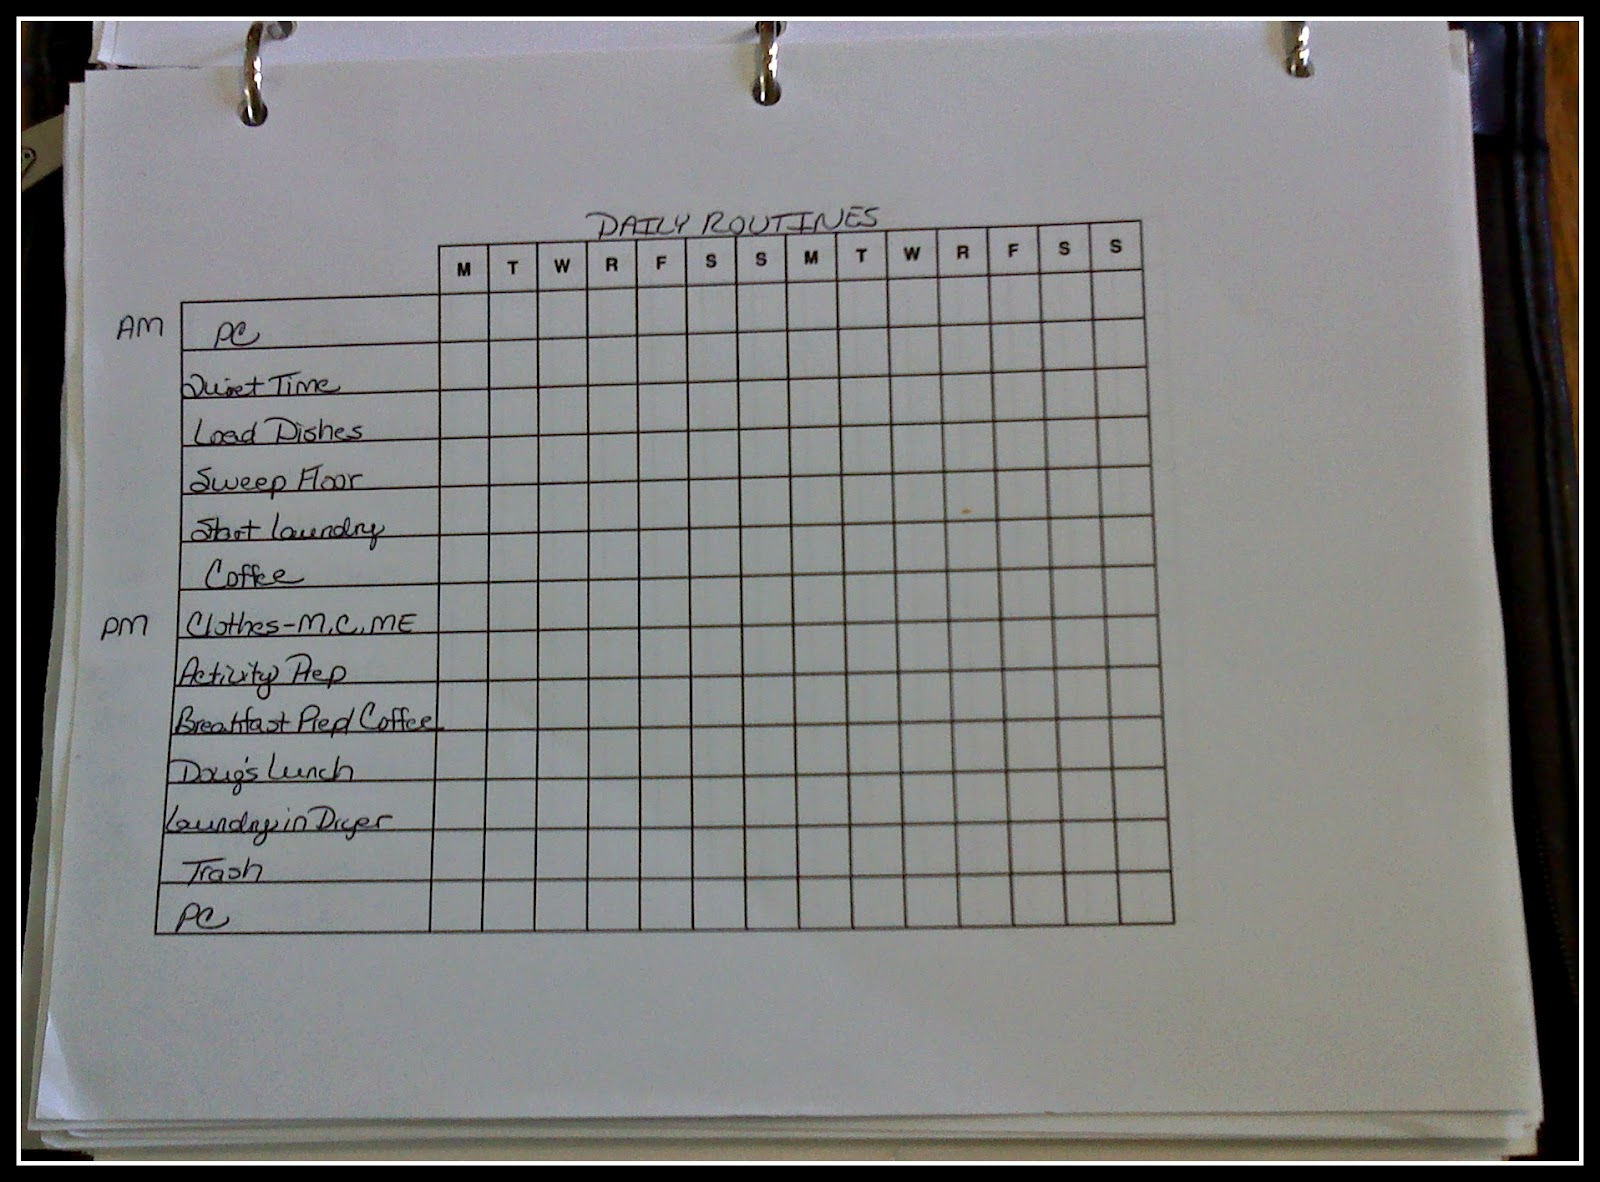 Free Printable Medication List Template Then there's my printable list